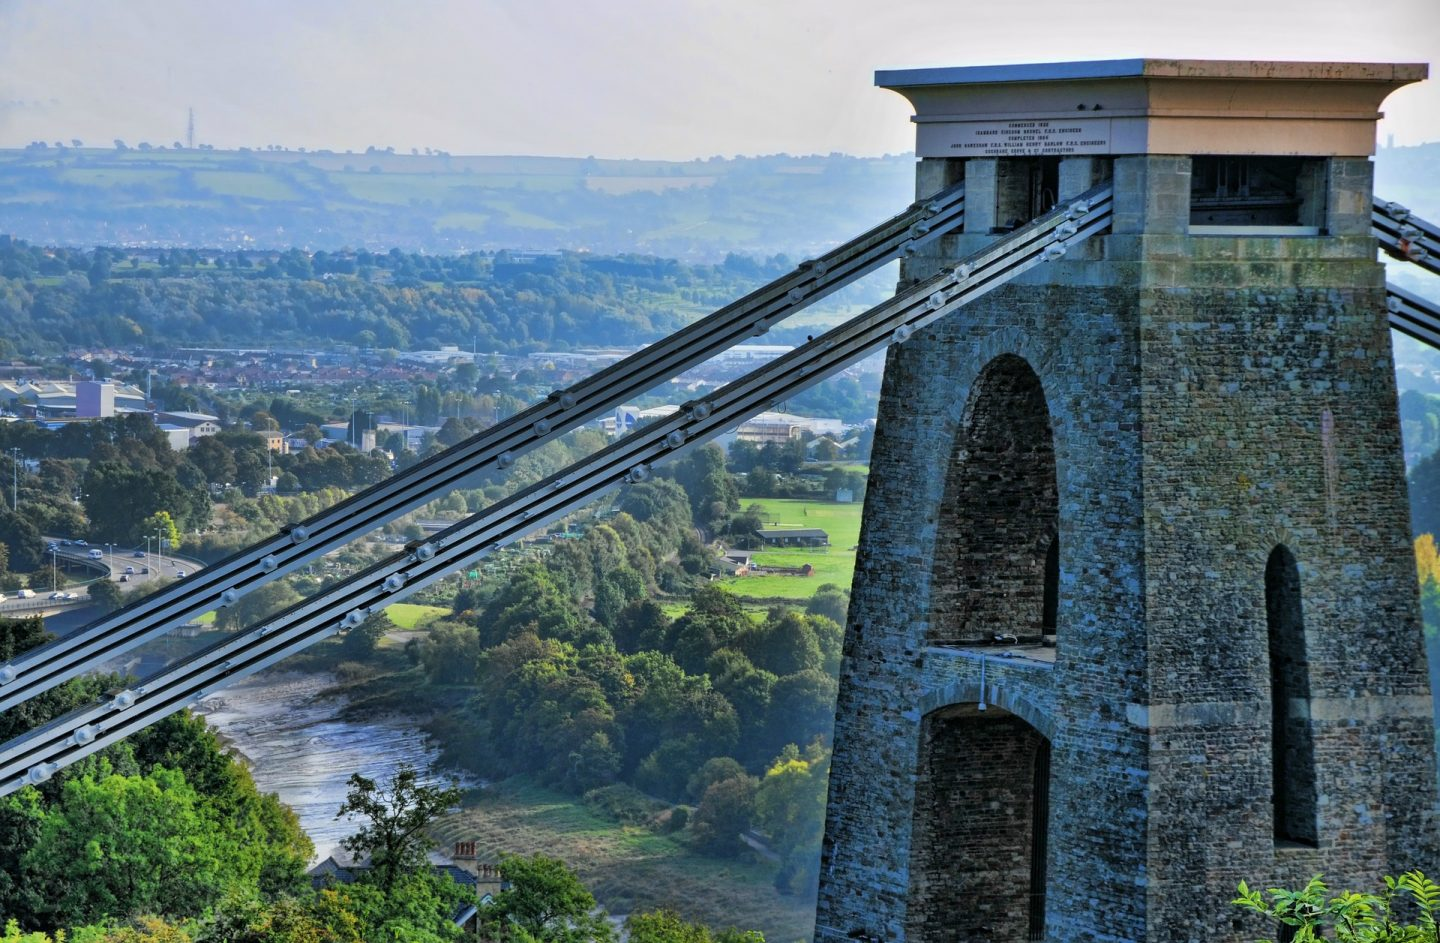 UK family friendly attractions handpicked by local mums - Clifton Suspension Bridge